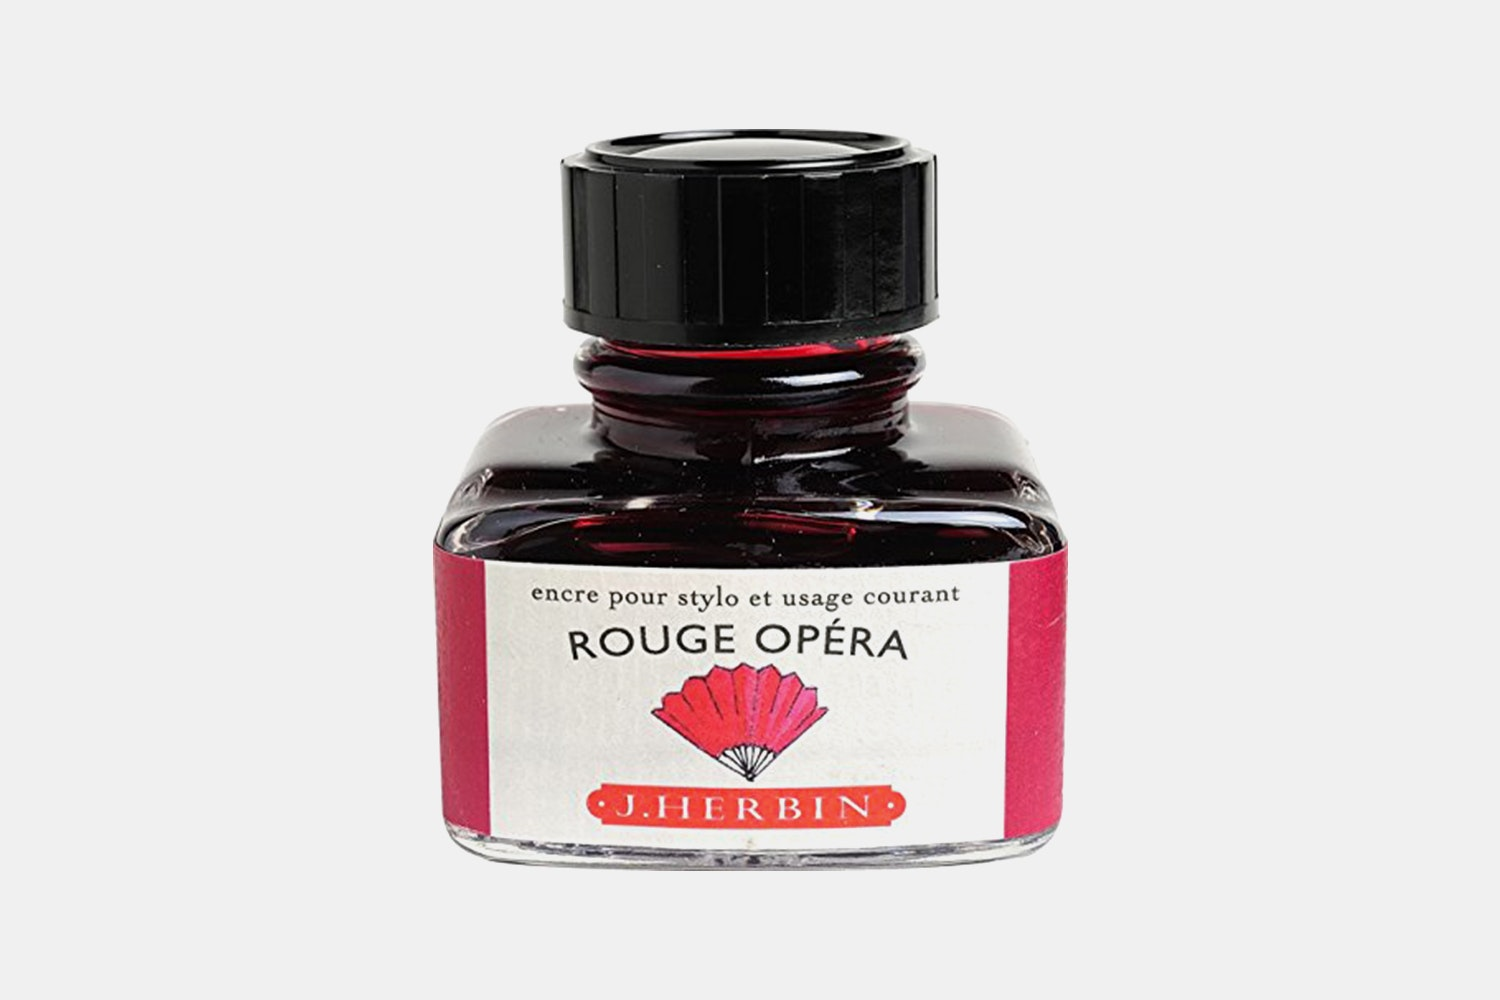 J. Herbin 30ml Bottled Ink - Rouge Opera (red)